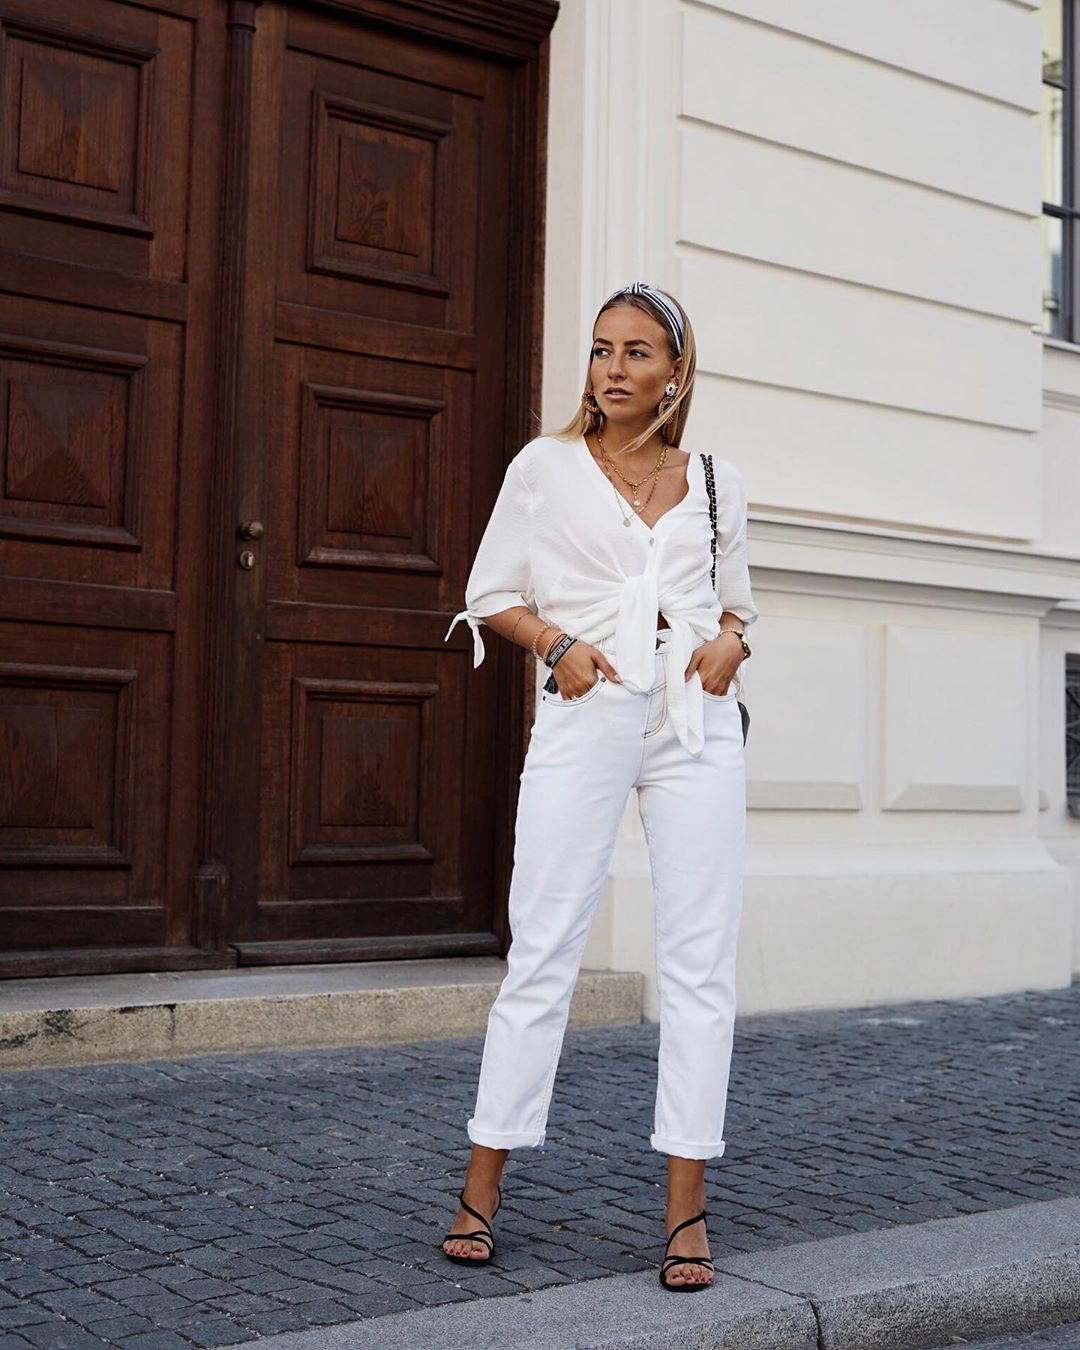 Wearing an All-White Outfit Is the Freshest Way to Dress for Spring